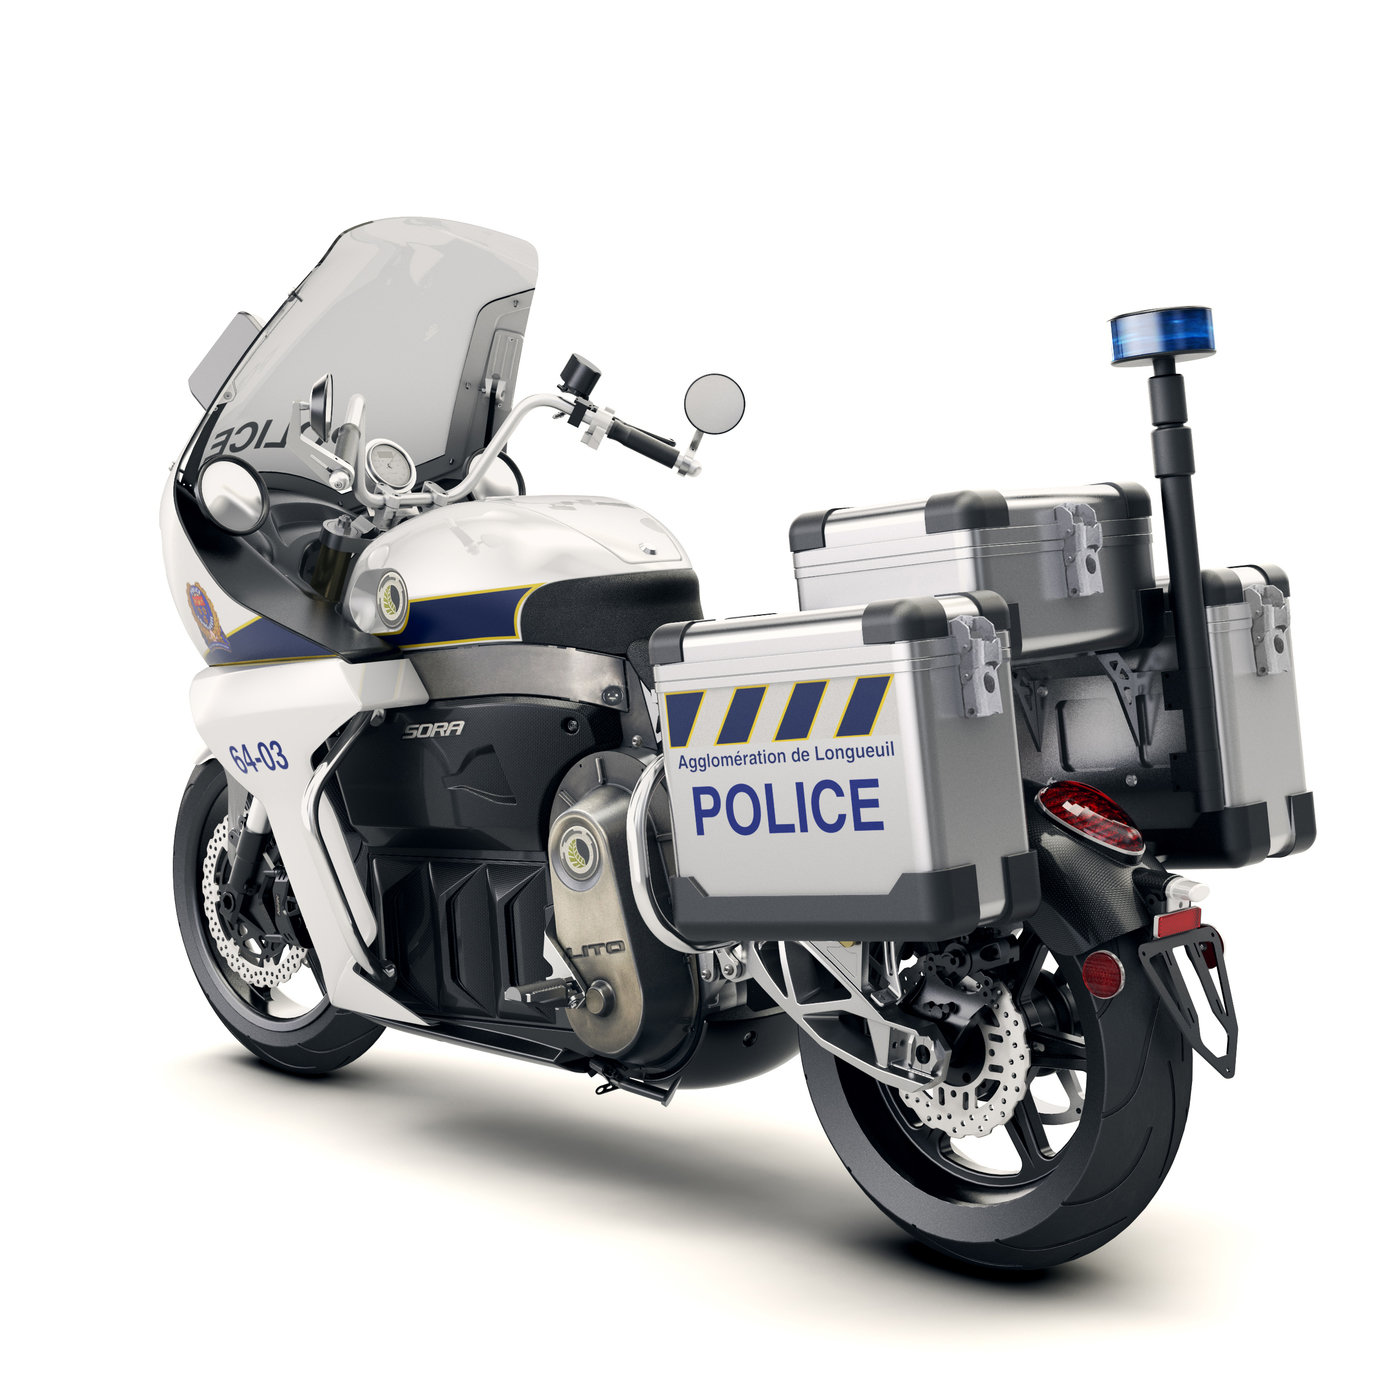 lito police electric motorcycle by martin aub at. Black Bedroom Furniture Sets. Home Design Ideas